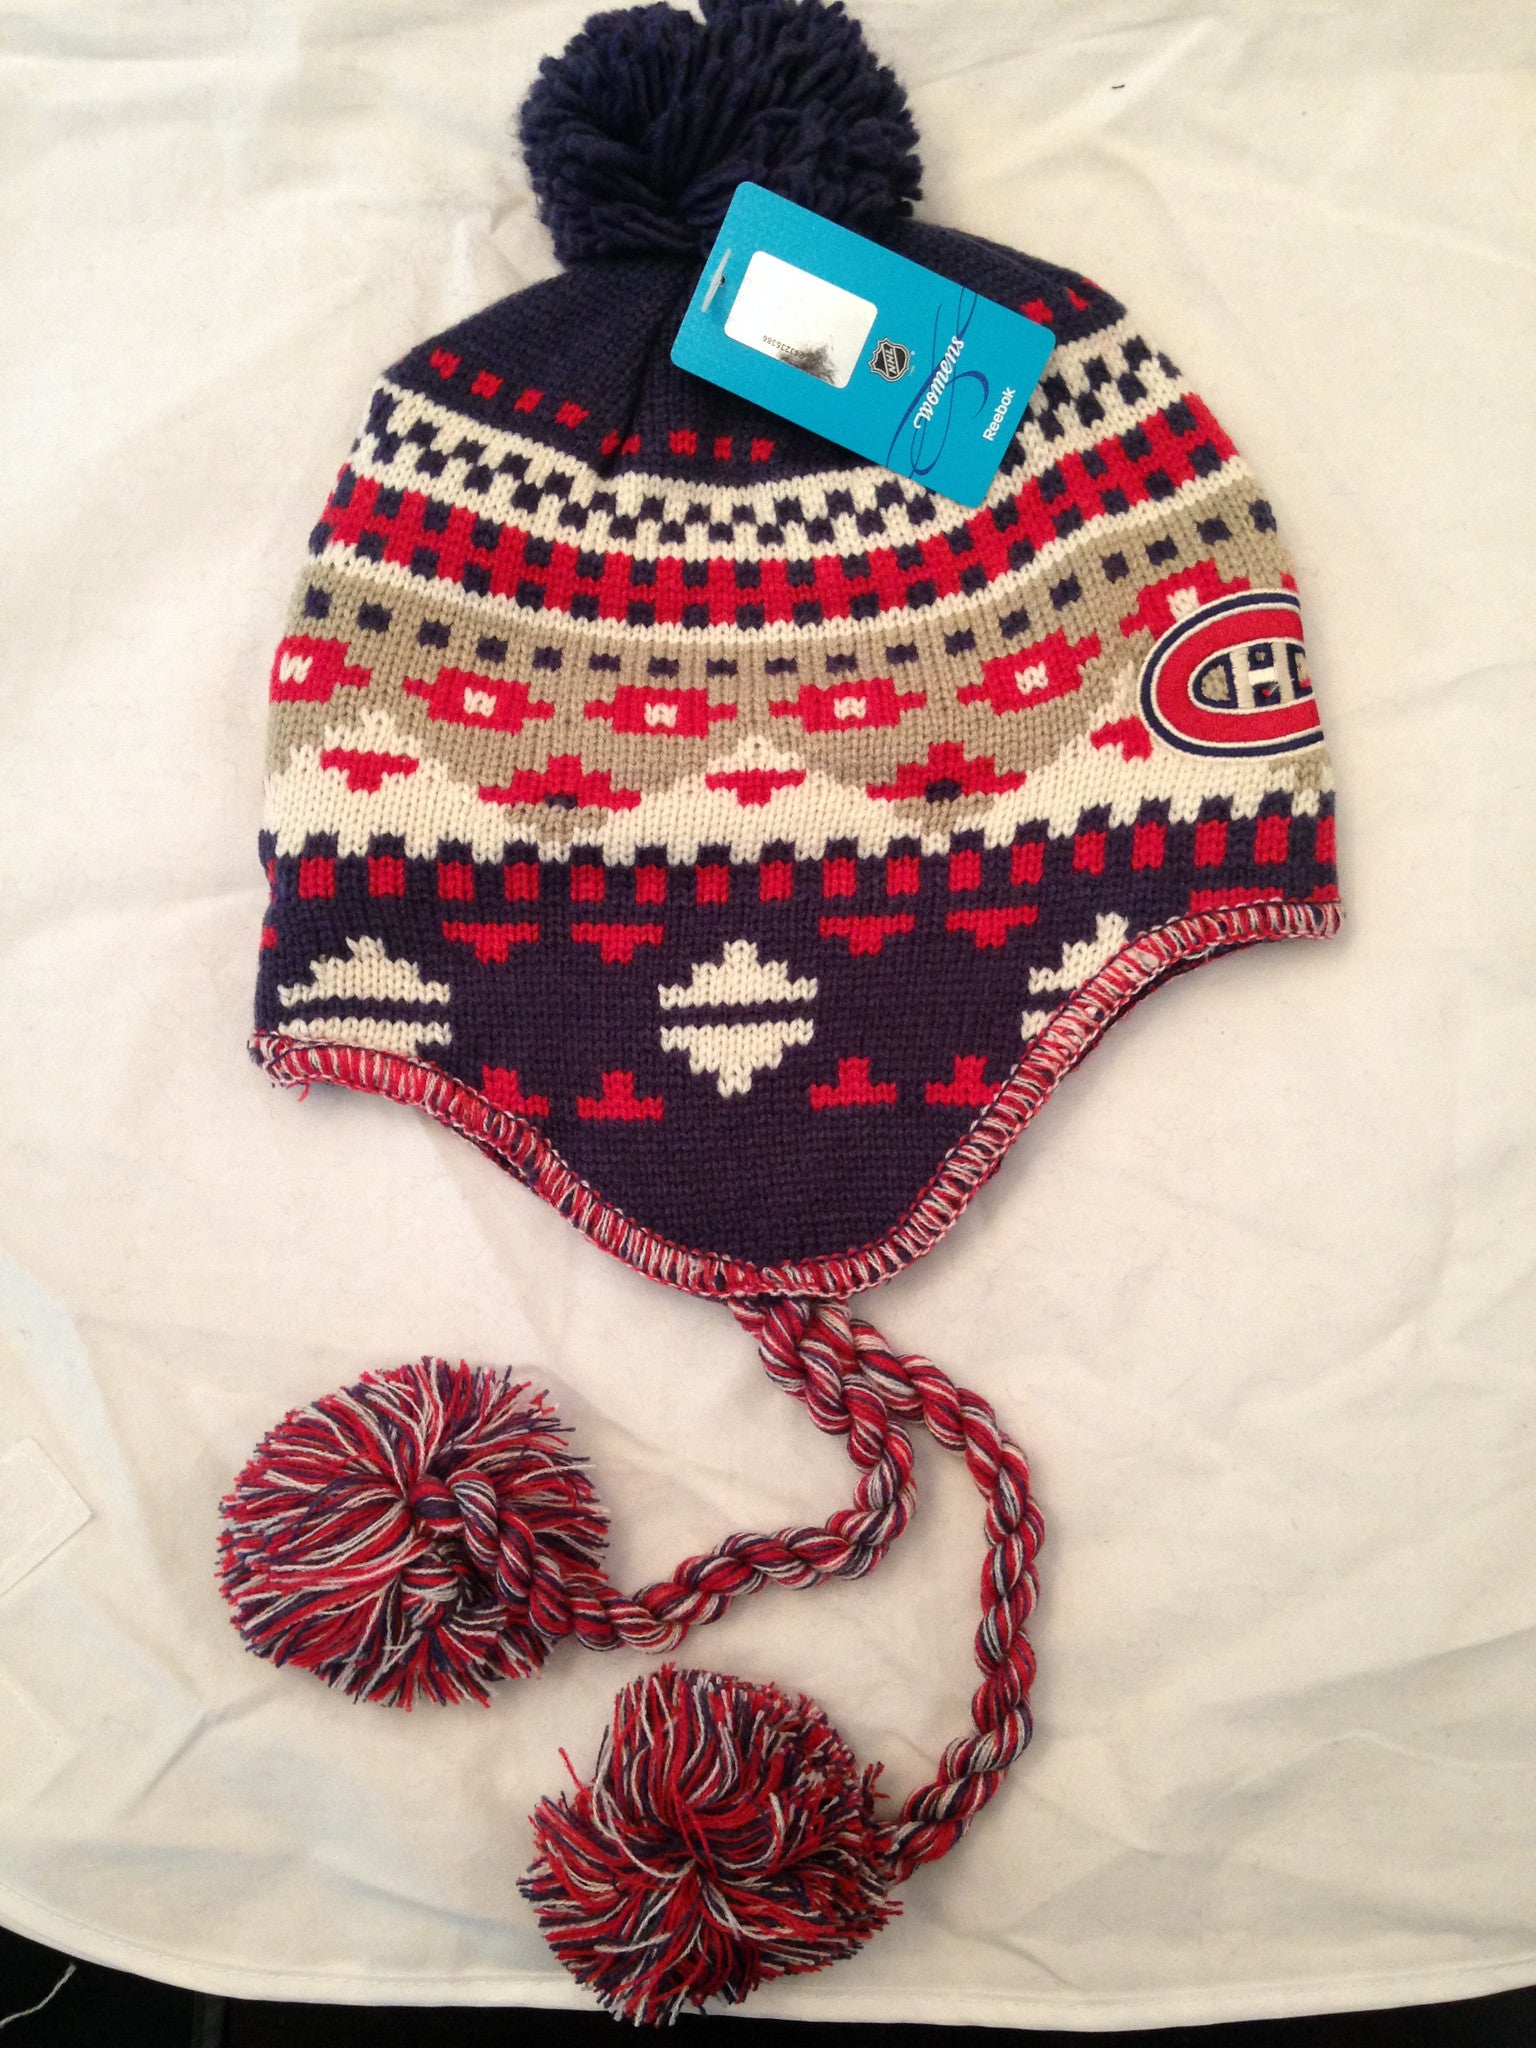 931b7eb5f1831a NHL Montreal Canadiens Women's Knit Winter Hat with Tassles – MancavesOnline